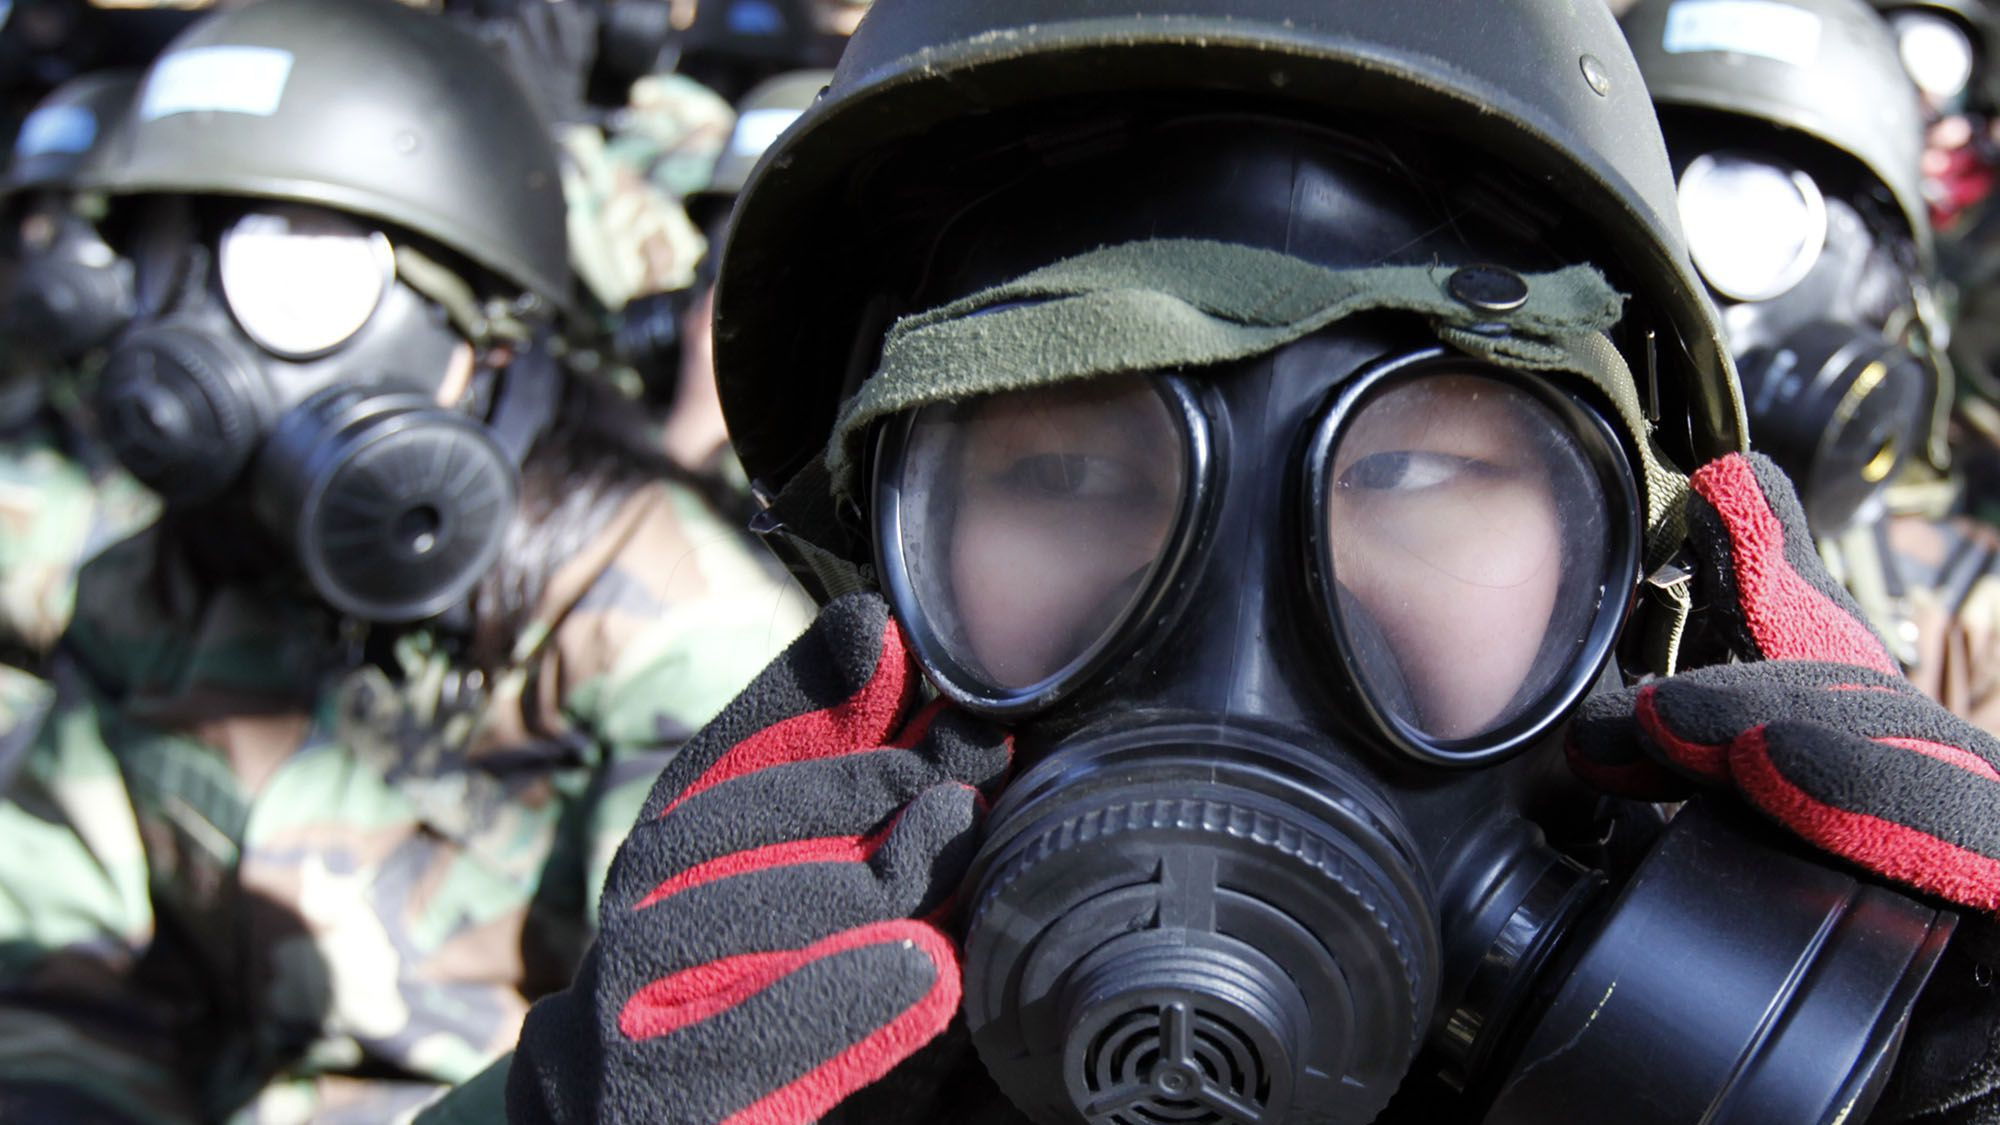 Students wear gasmasks before entering a building where they will be exposed to tear gas as part of their chemical, biological and radiological training during a winter military boot camp at a military unit in Bucheon, west of Seoul January 20, 2011. The boot camp is run by South Korean special forces, who have organised six winter boot camps across the country in January. There are currently 1,200 civilians including students, who participate in the four-day long boot camp.